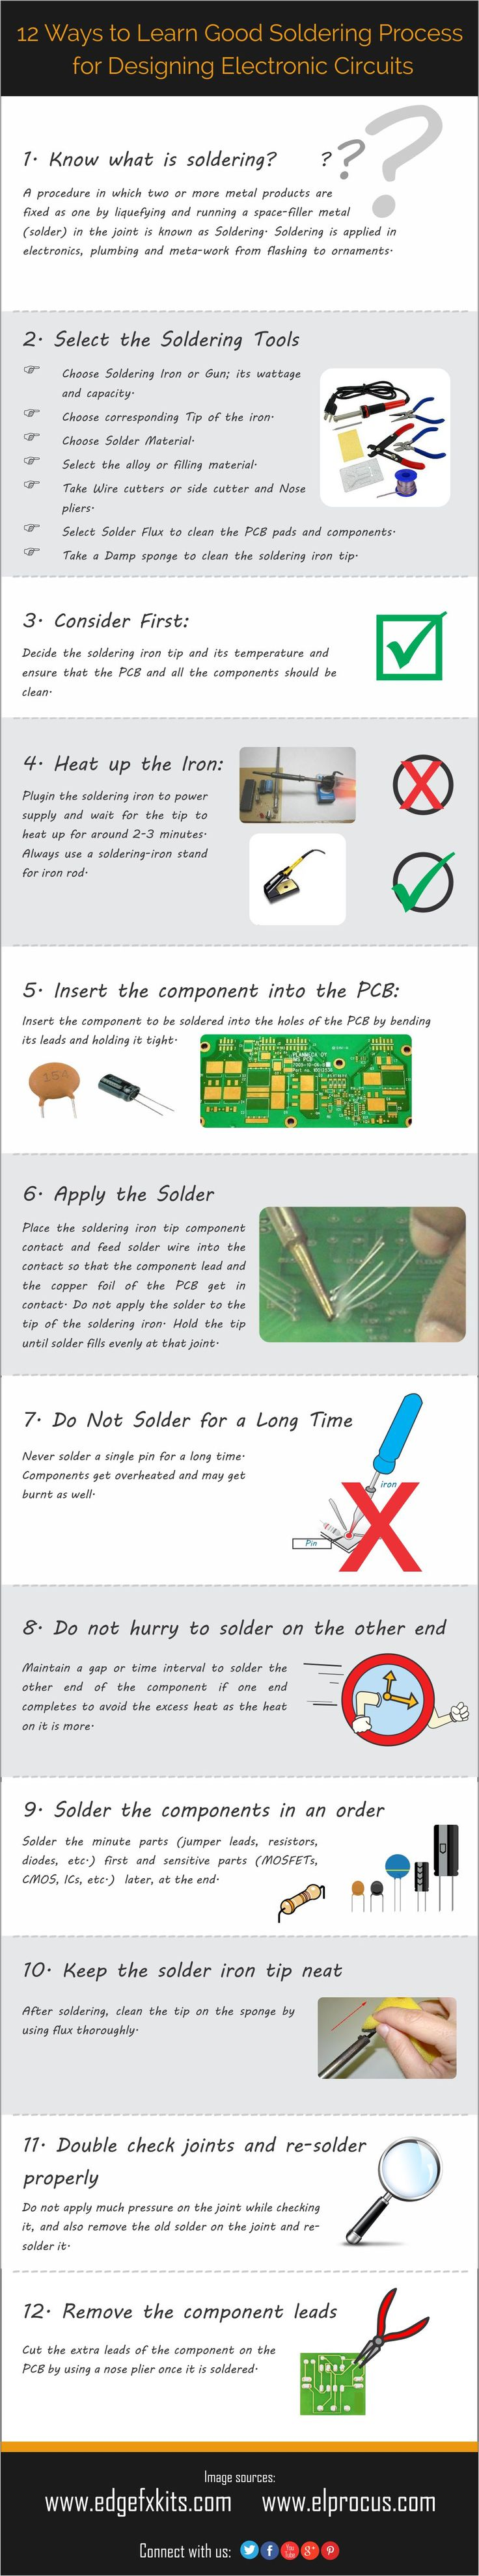 146 Best Expand Education Images On Pinterest Gym Studying And Engineering Schematics Wow Jeeves 10 Ways To Learn Good Soldering Process For Designing Electronic Circuits Make